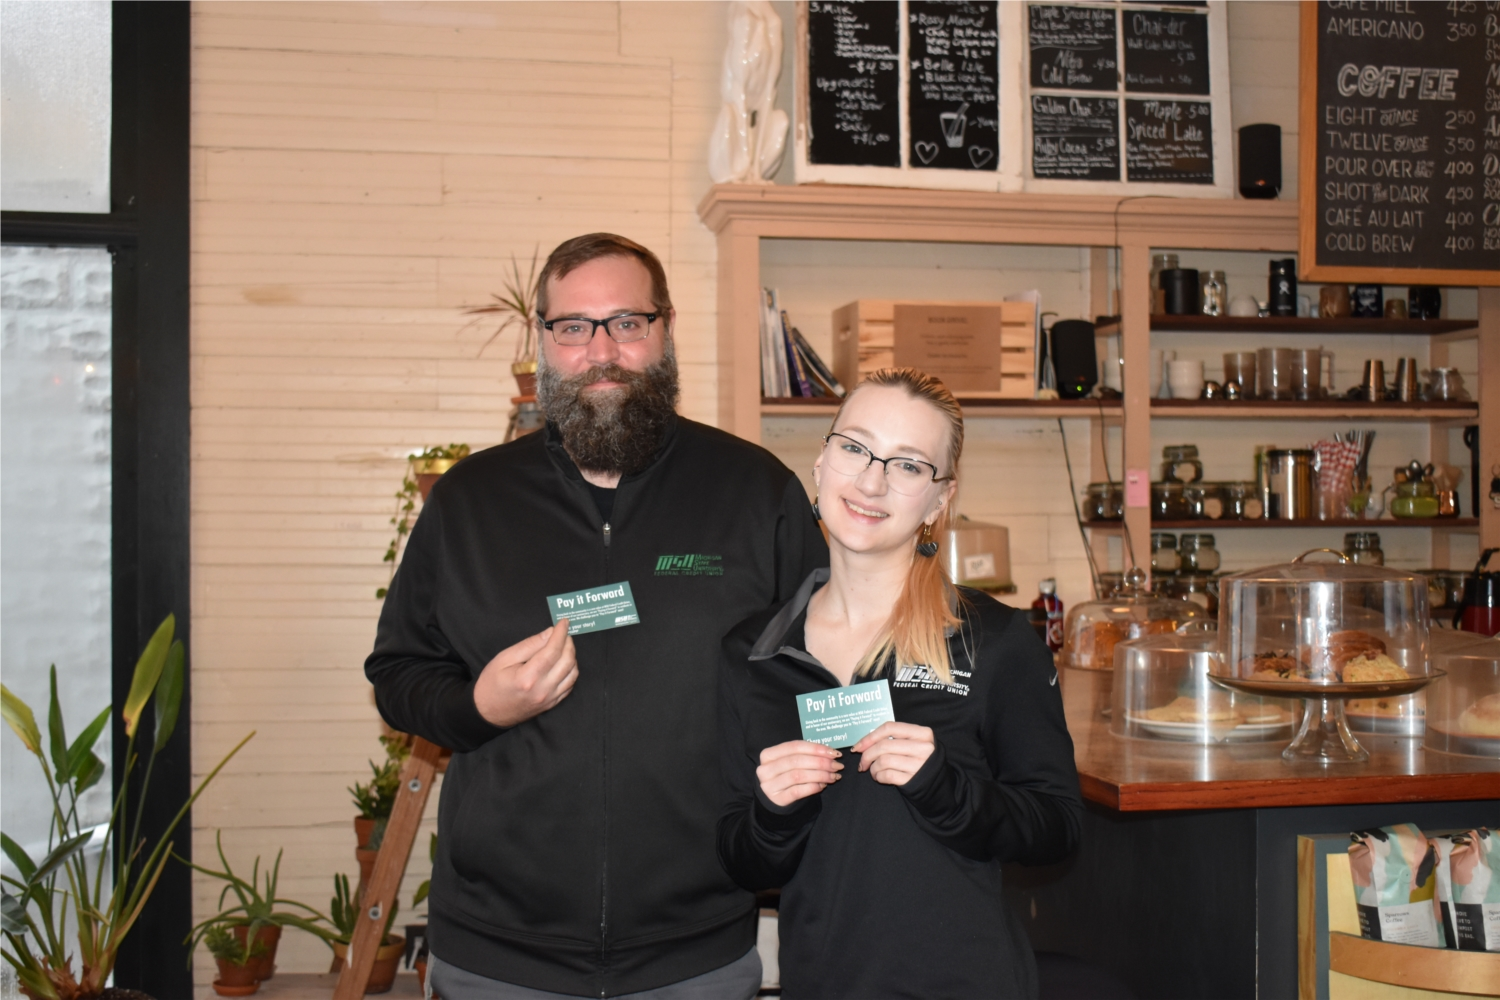 Employees paying it forward at a local coffee shop during our annual Pay It Forward week.